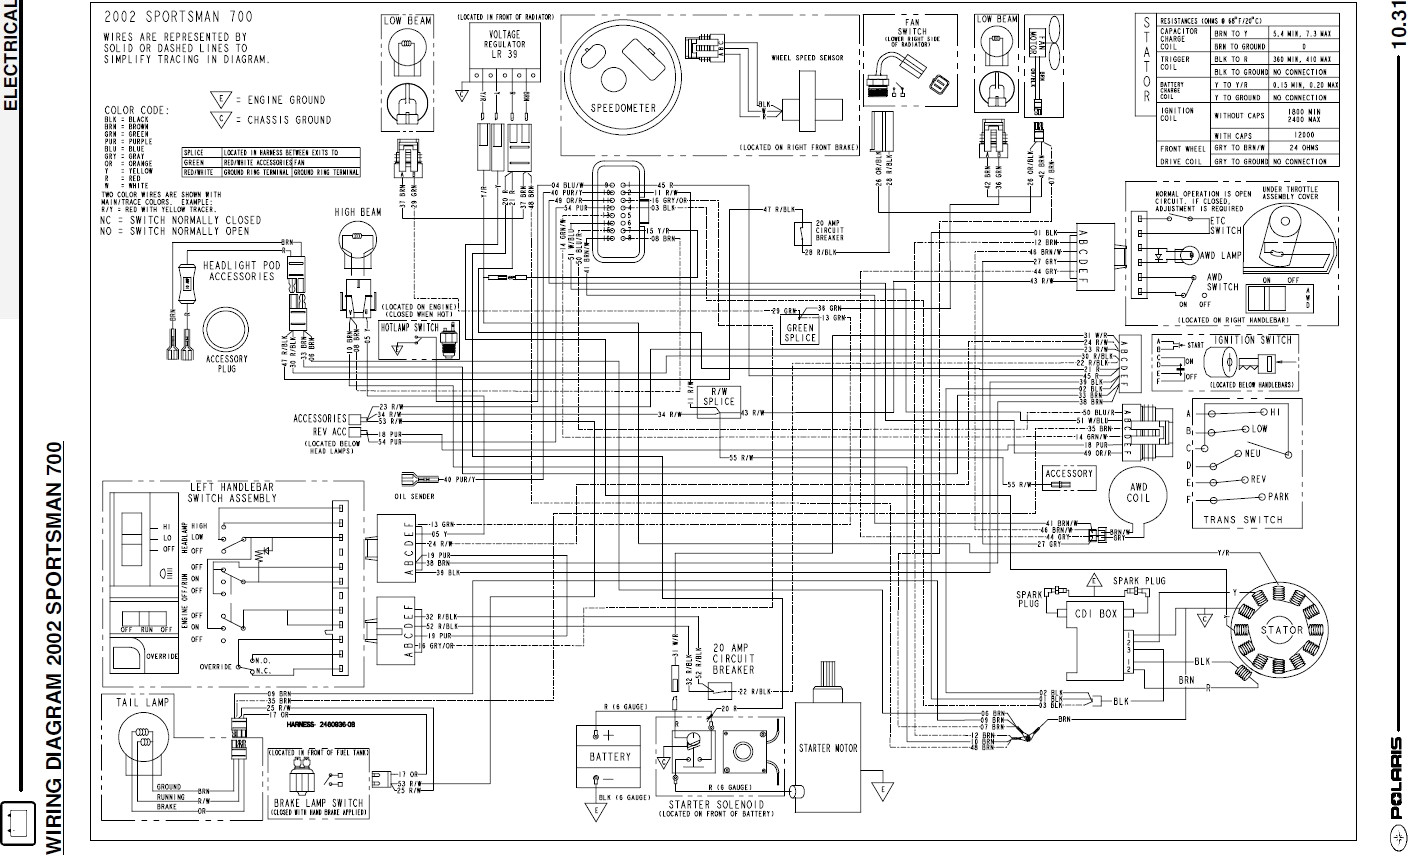 mobile auto electrical schematics 97 polaris scrambler 400 wiring diagram - wiring diagram ... #15